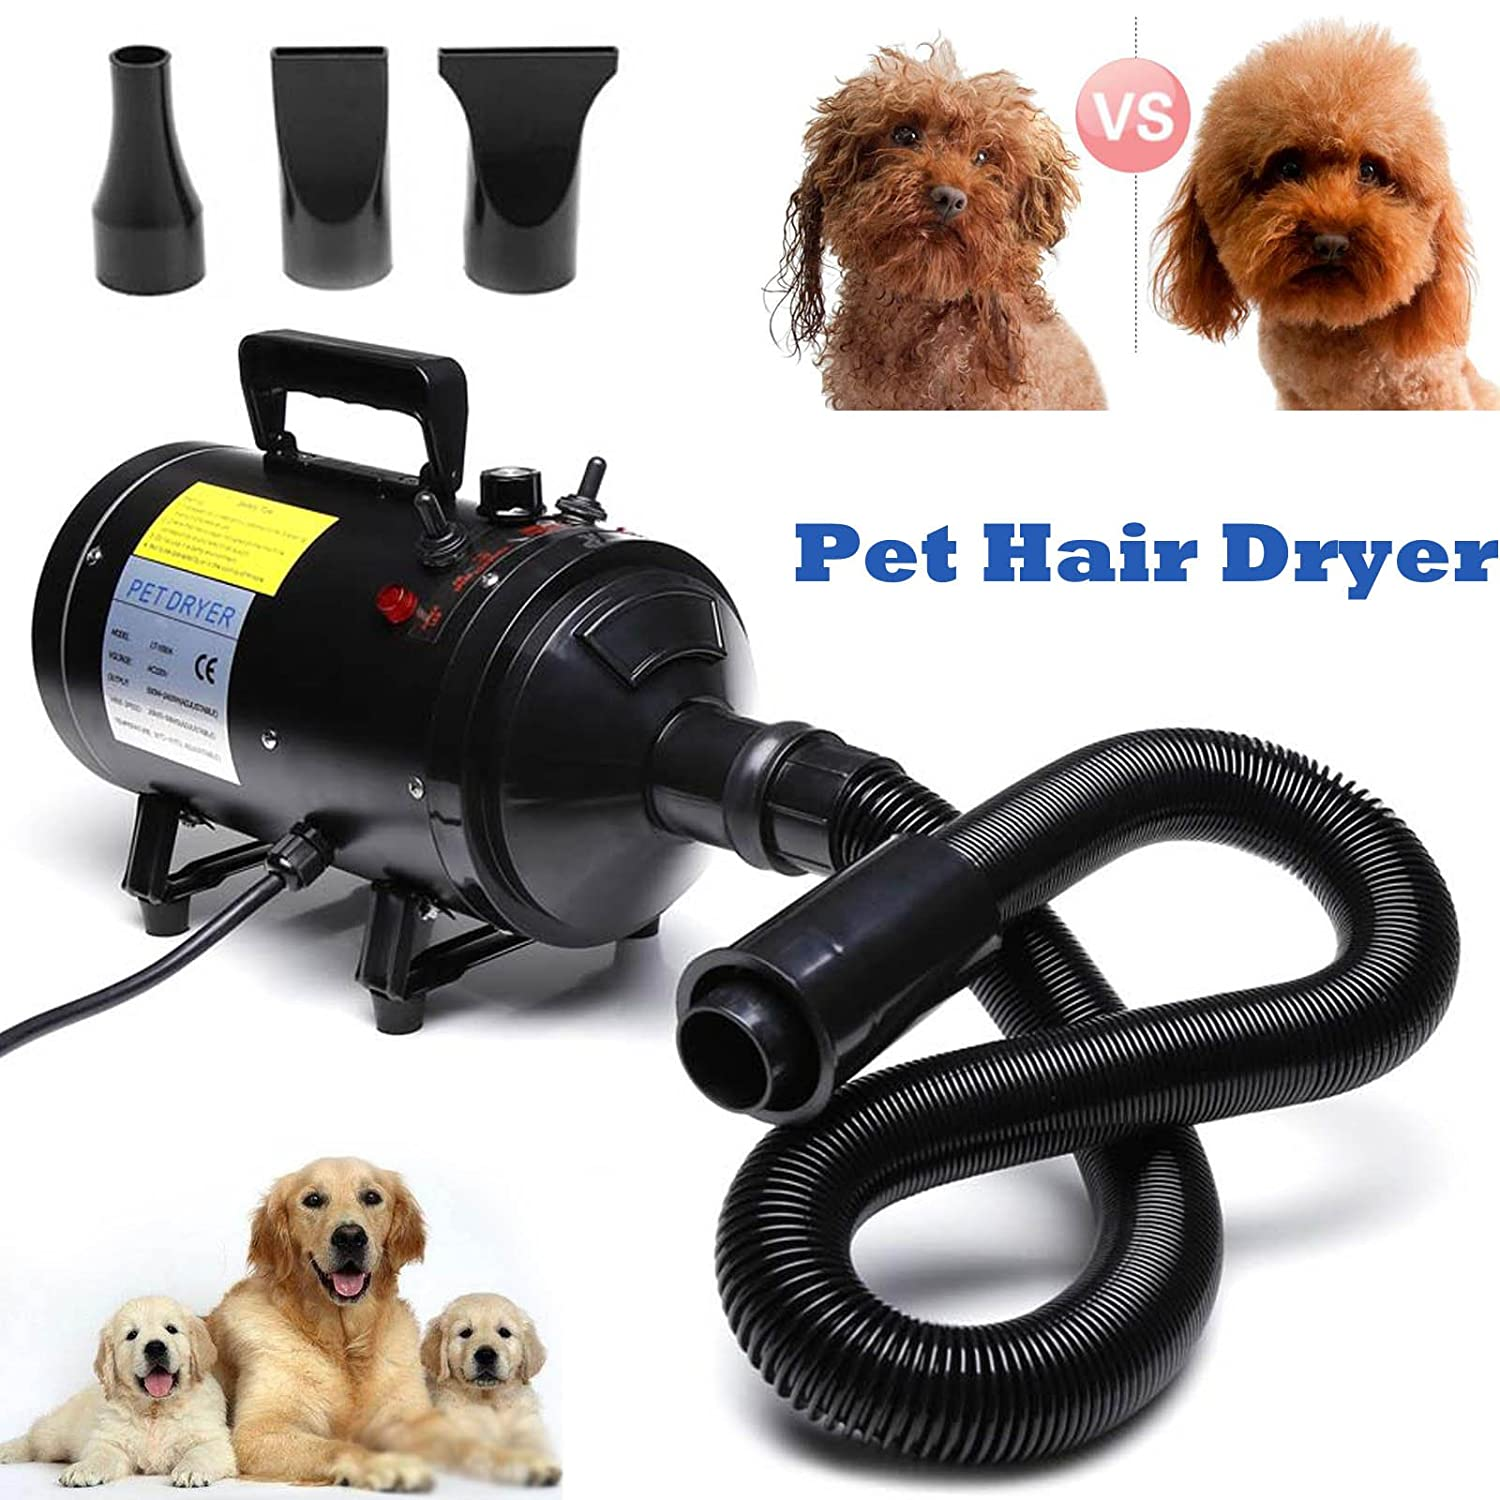 Autofather Pet Dog Cat Hair Dryer Adjustable Heat Temperature Grooming Stepless Speed Professional Hairdryer with 3 Different Nozzles, 2 Year Warranty